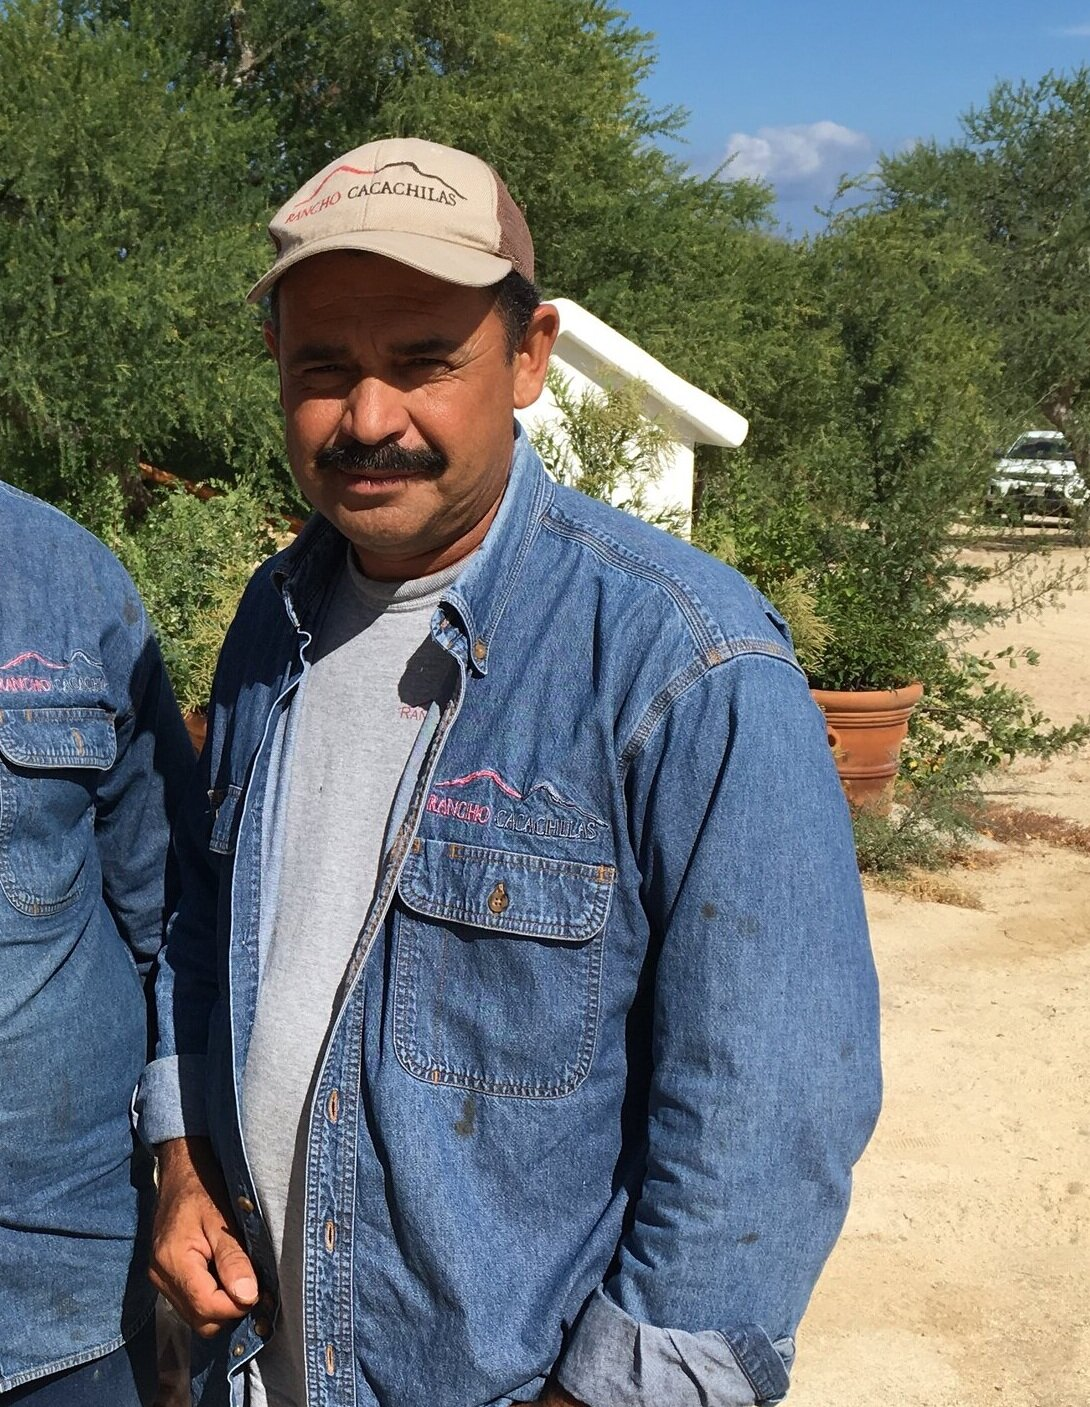 Benigno Geraldo - Farmer and Beekeeper   Benigno came in to assist Juan Carlos in the fall of 2015 and has also been at the farm since it's beginning in 2016. Benigno, like Juan Carlos, worked in conventional agriculture, animal husbandry, and construction before joining us at RC. He is hardworking and proud of the high quality products his team produces. He was born and raised in a nearby ranch and is raising a family as well.